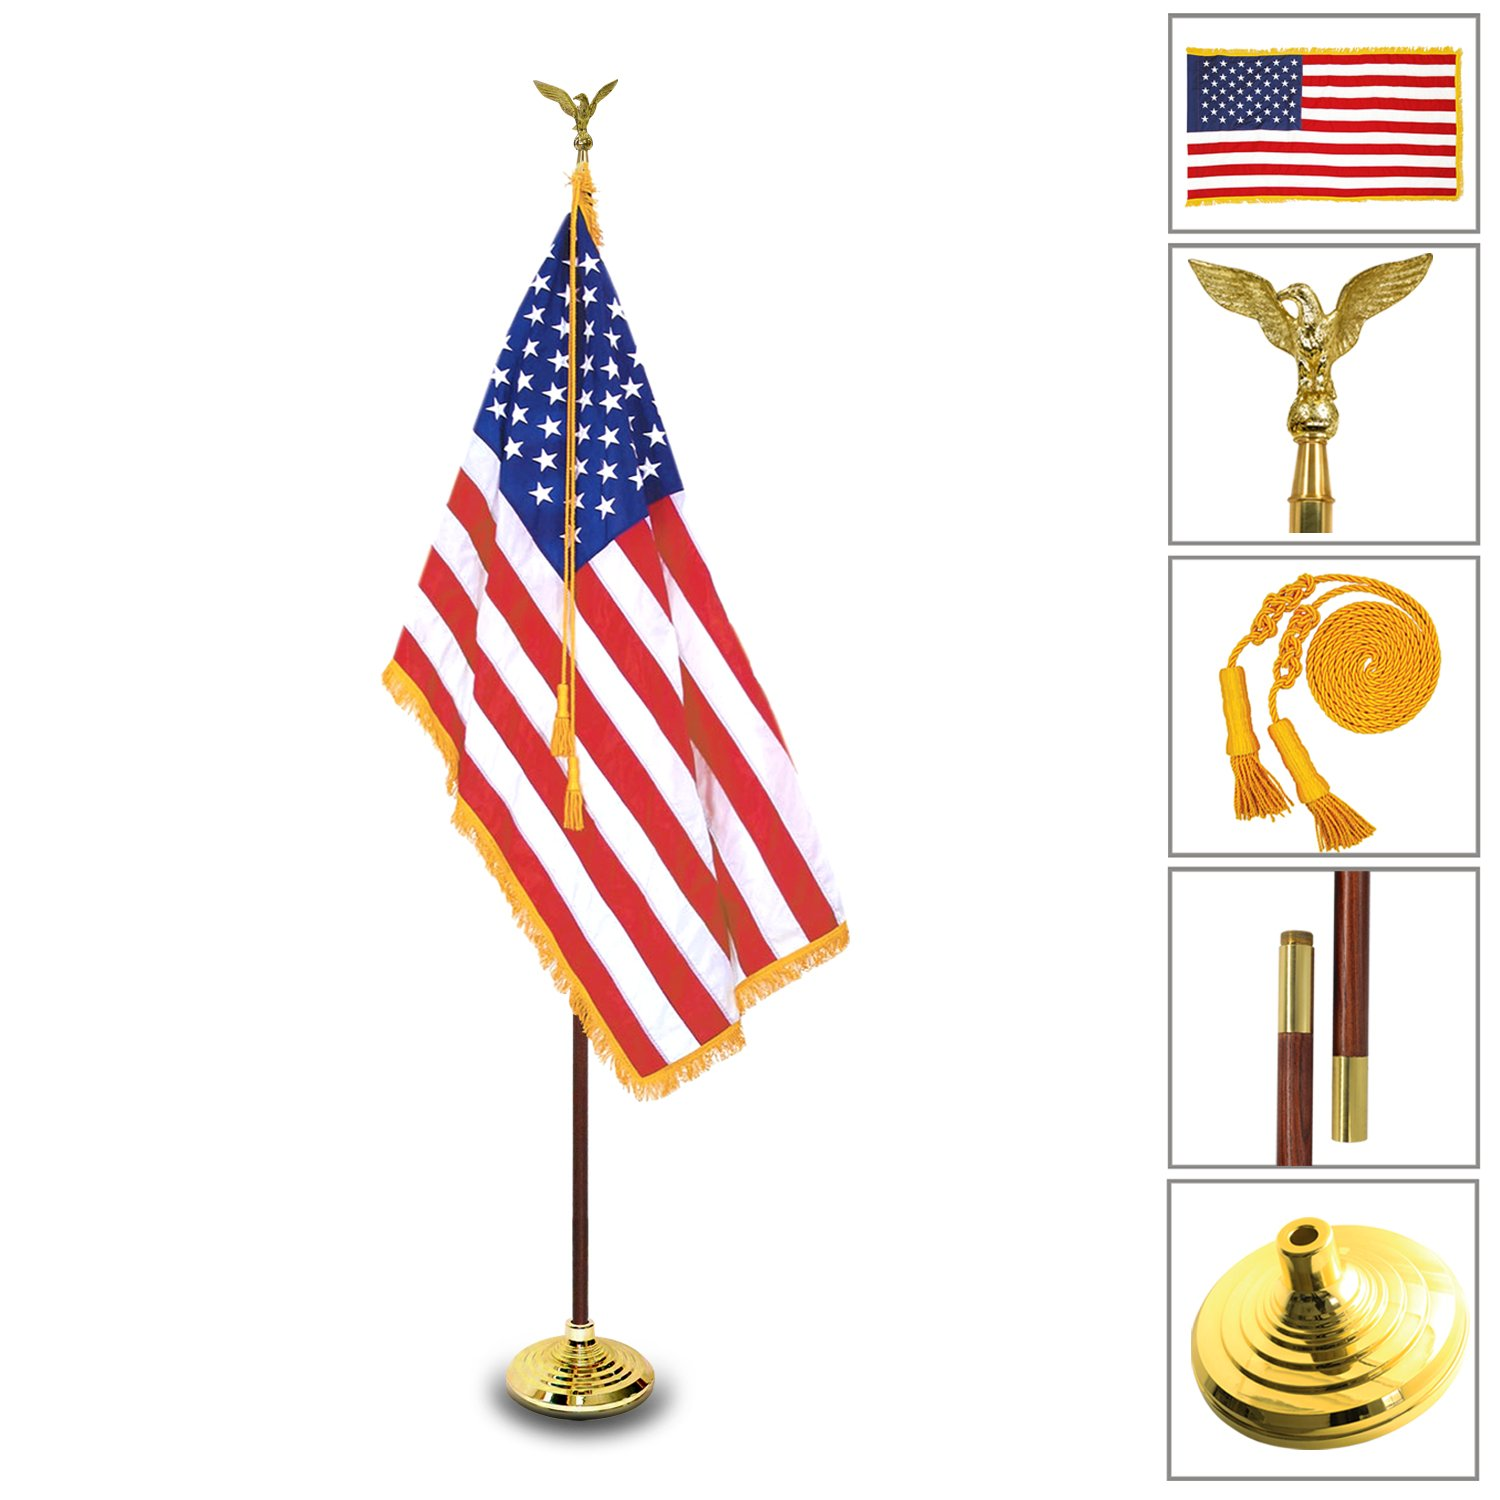 Anley 8 Ft [Presidential Deluxe] Indoor USA Flag Pole Set - 8' Oak Pole, Gold Fringed US Flag, Stand, Cord Tassel and Eagle Top Ornament for Offices, Schools, Churches & Auditoriums 8 Foot High